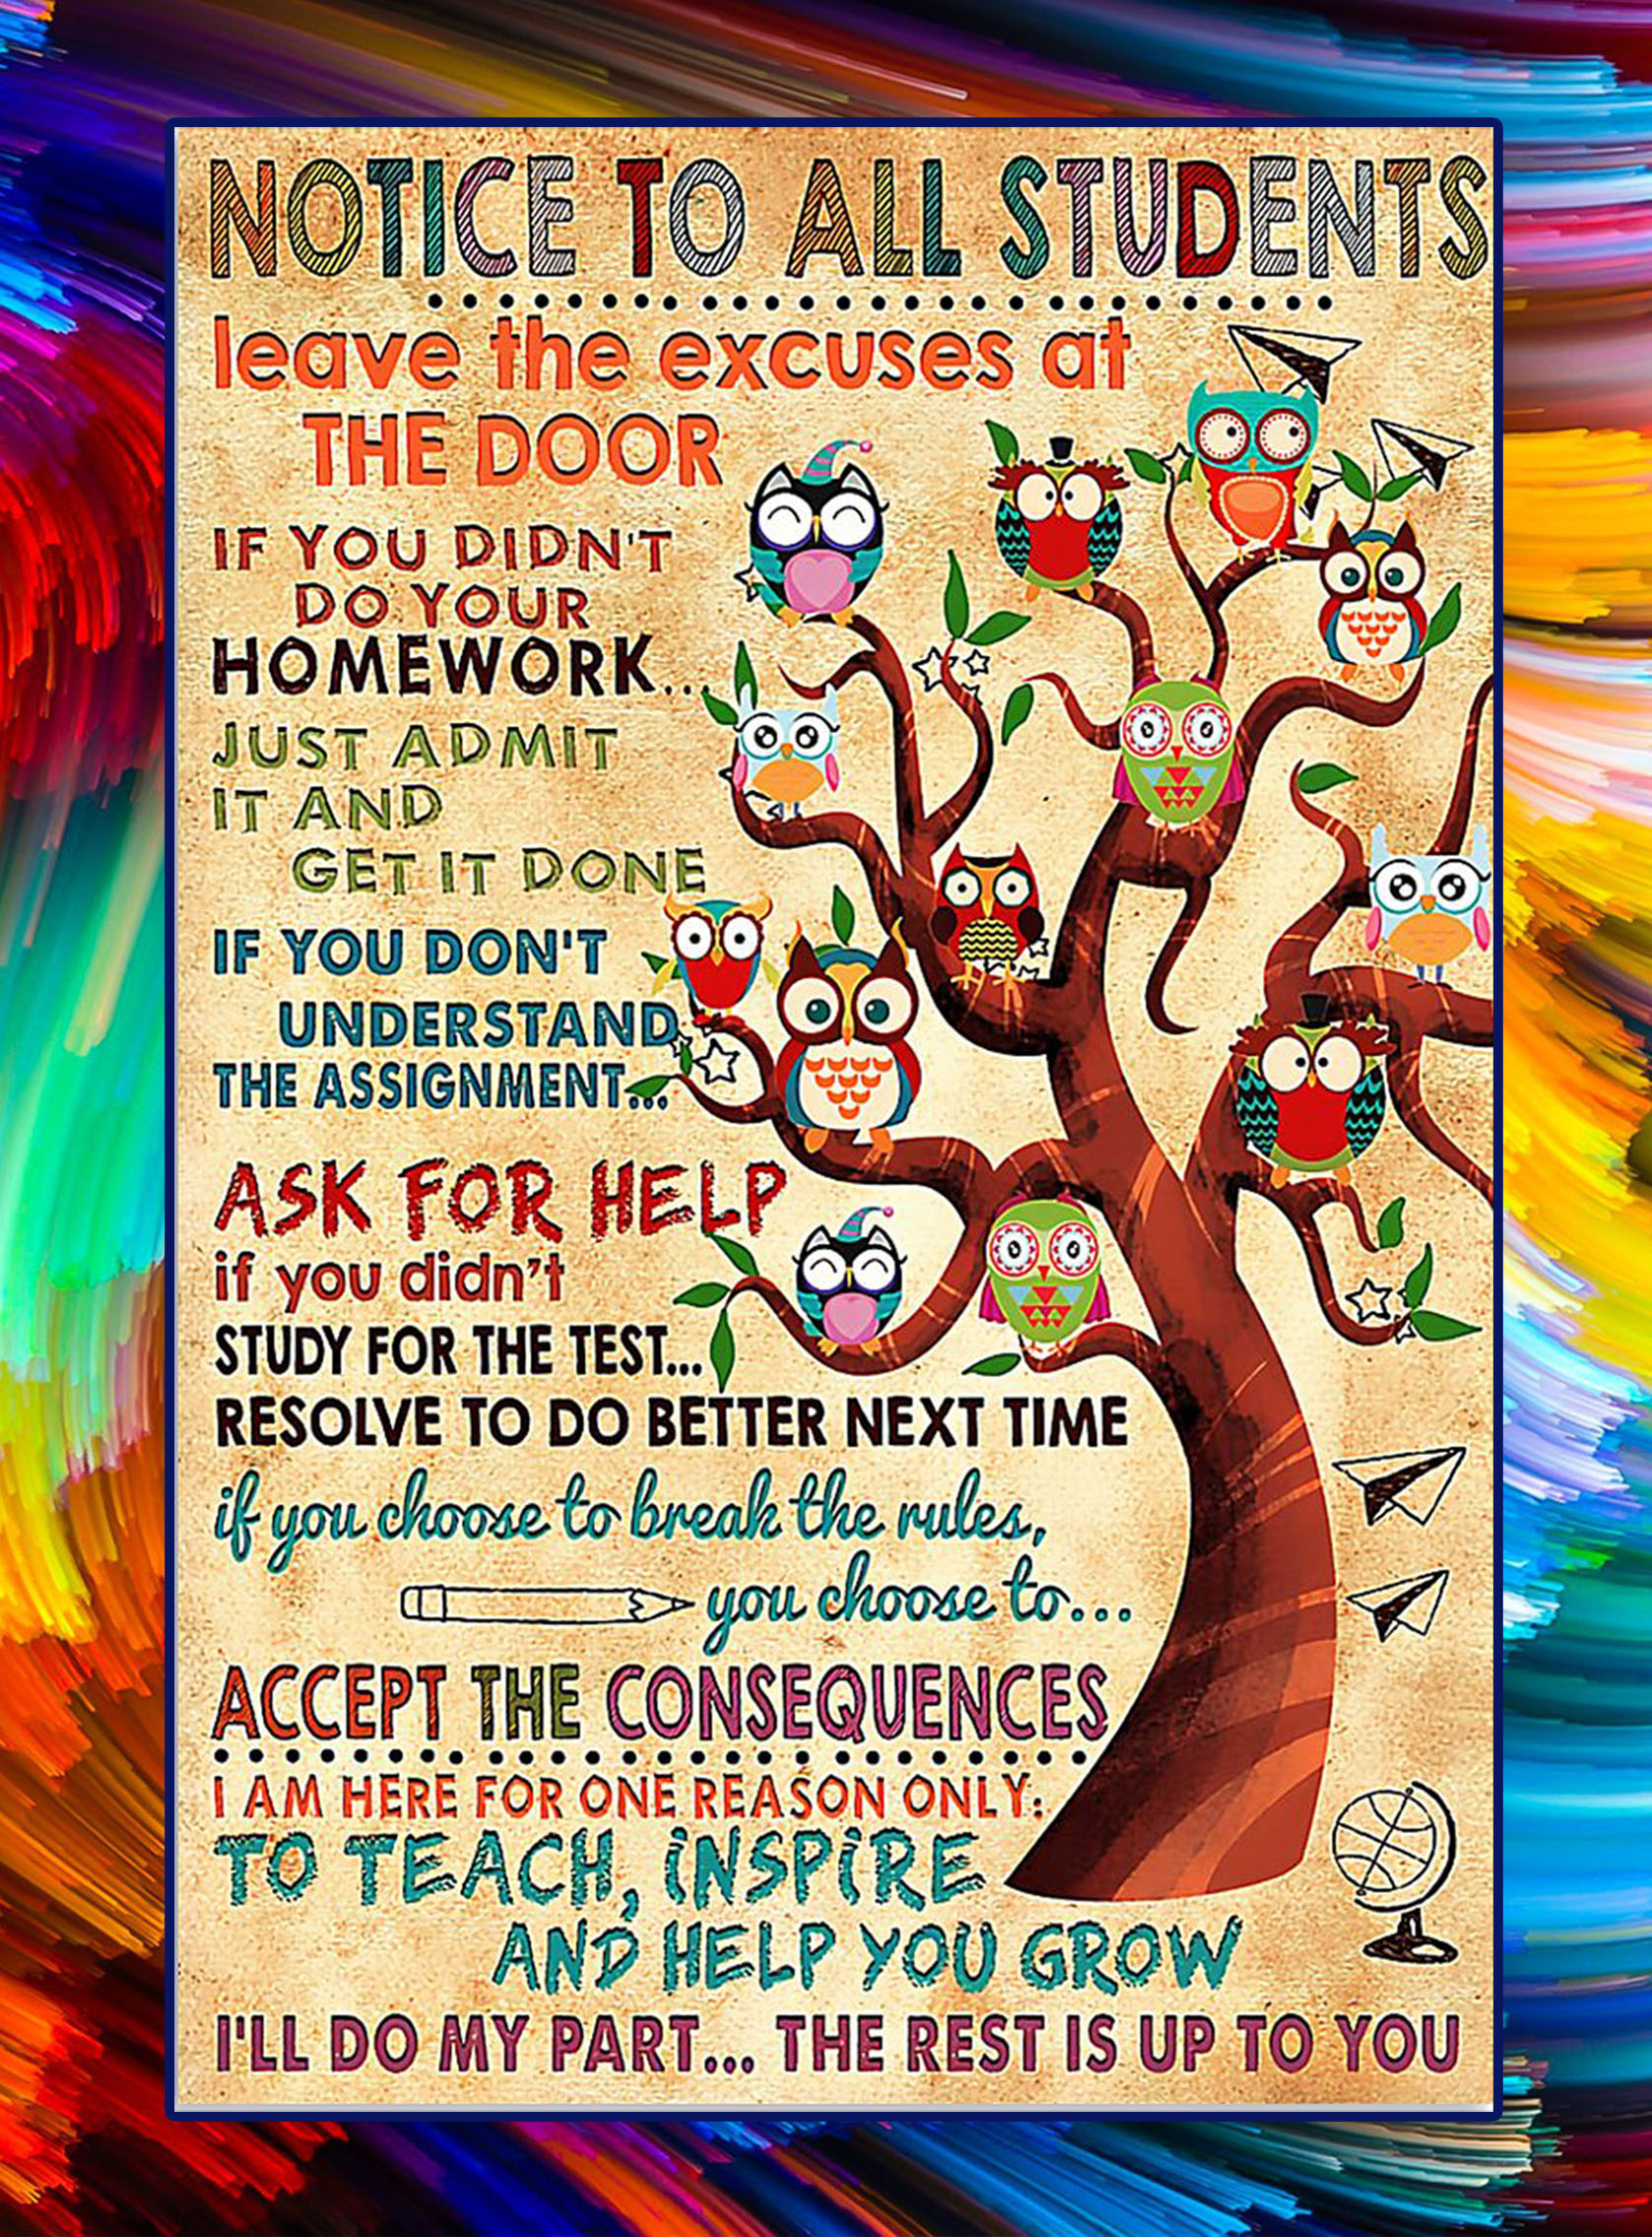 Notice to all students teacher owl poster - A1